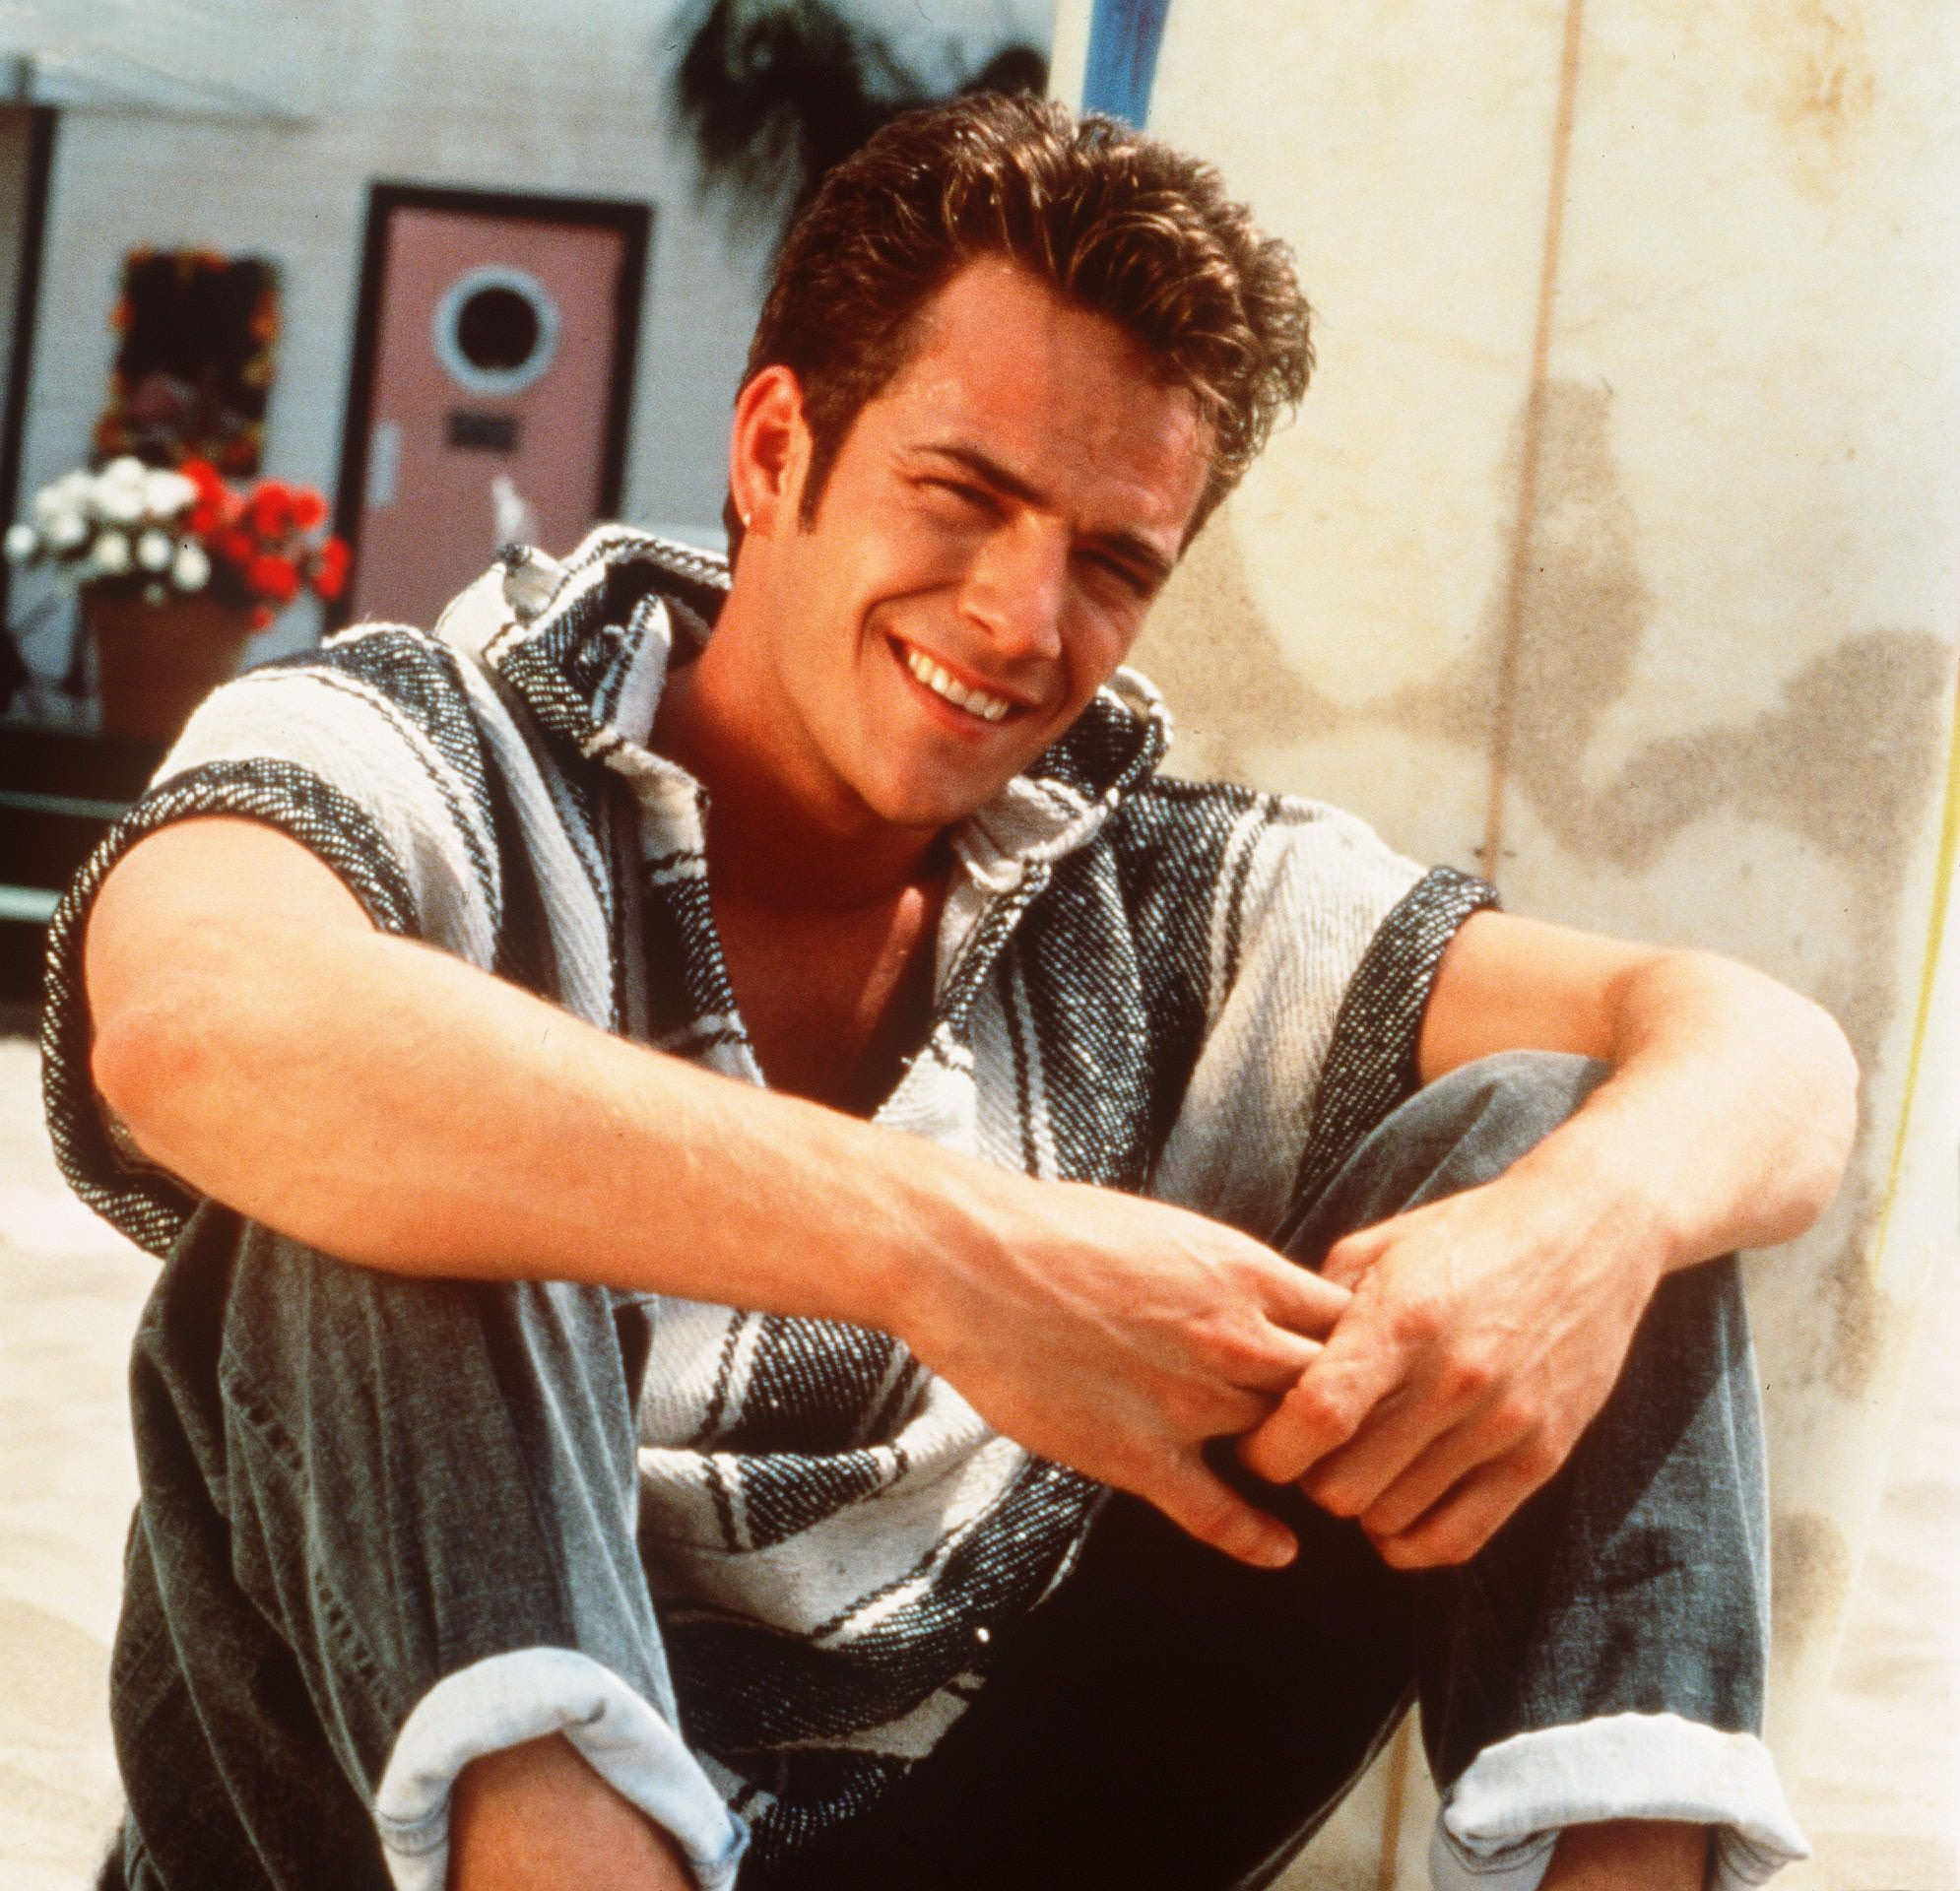 From 90210 to Riverdale: Luke Perry's best known roles